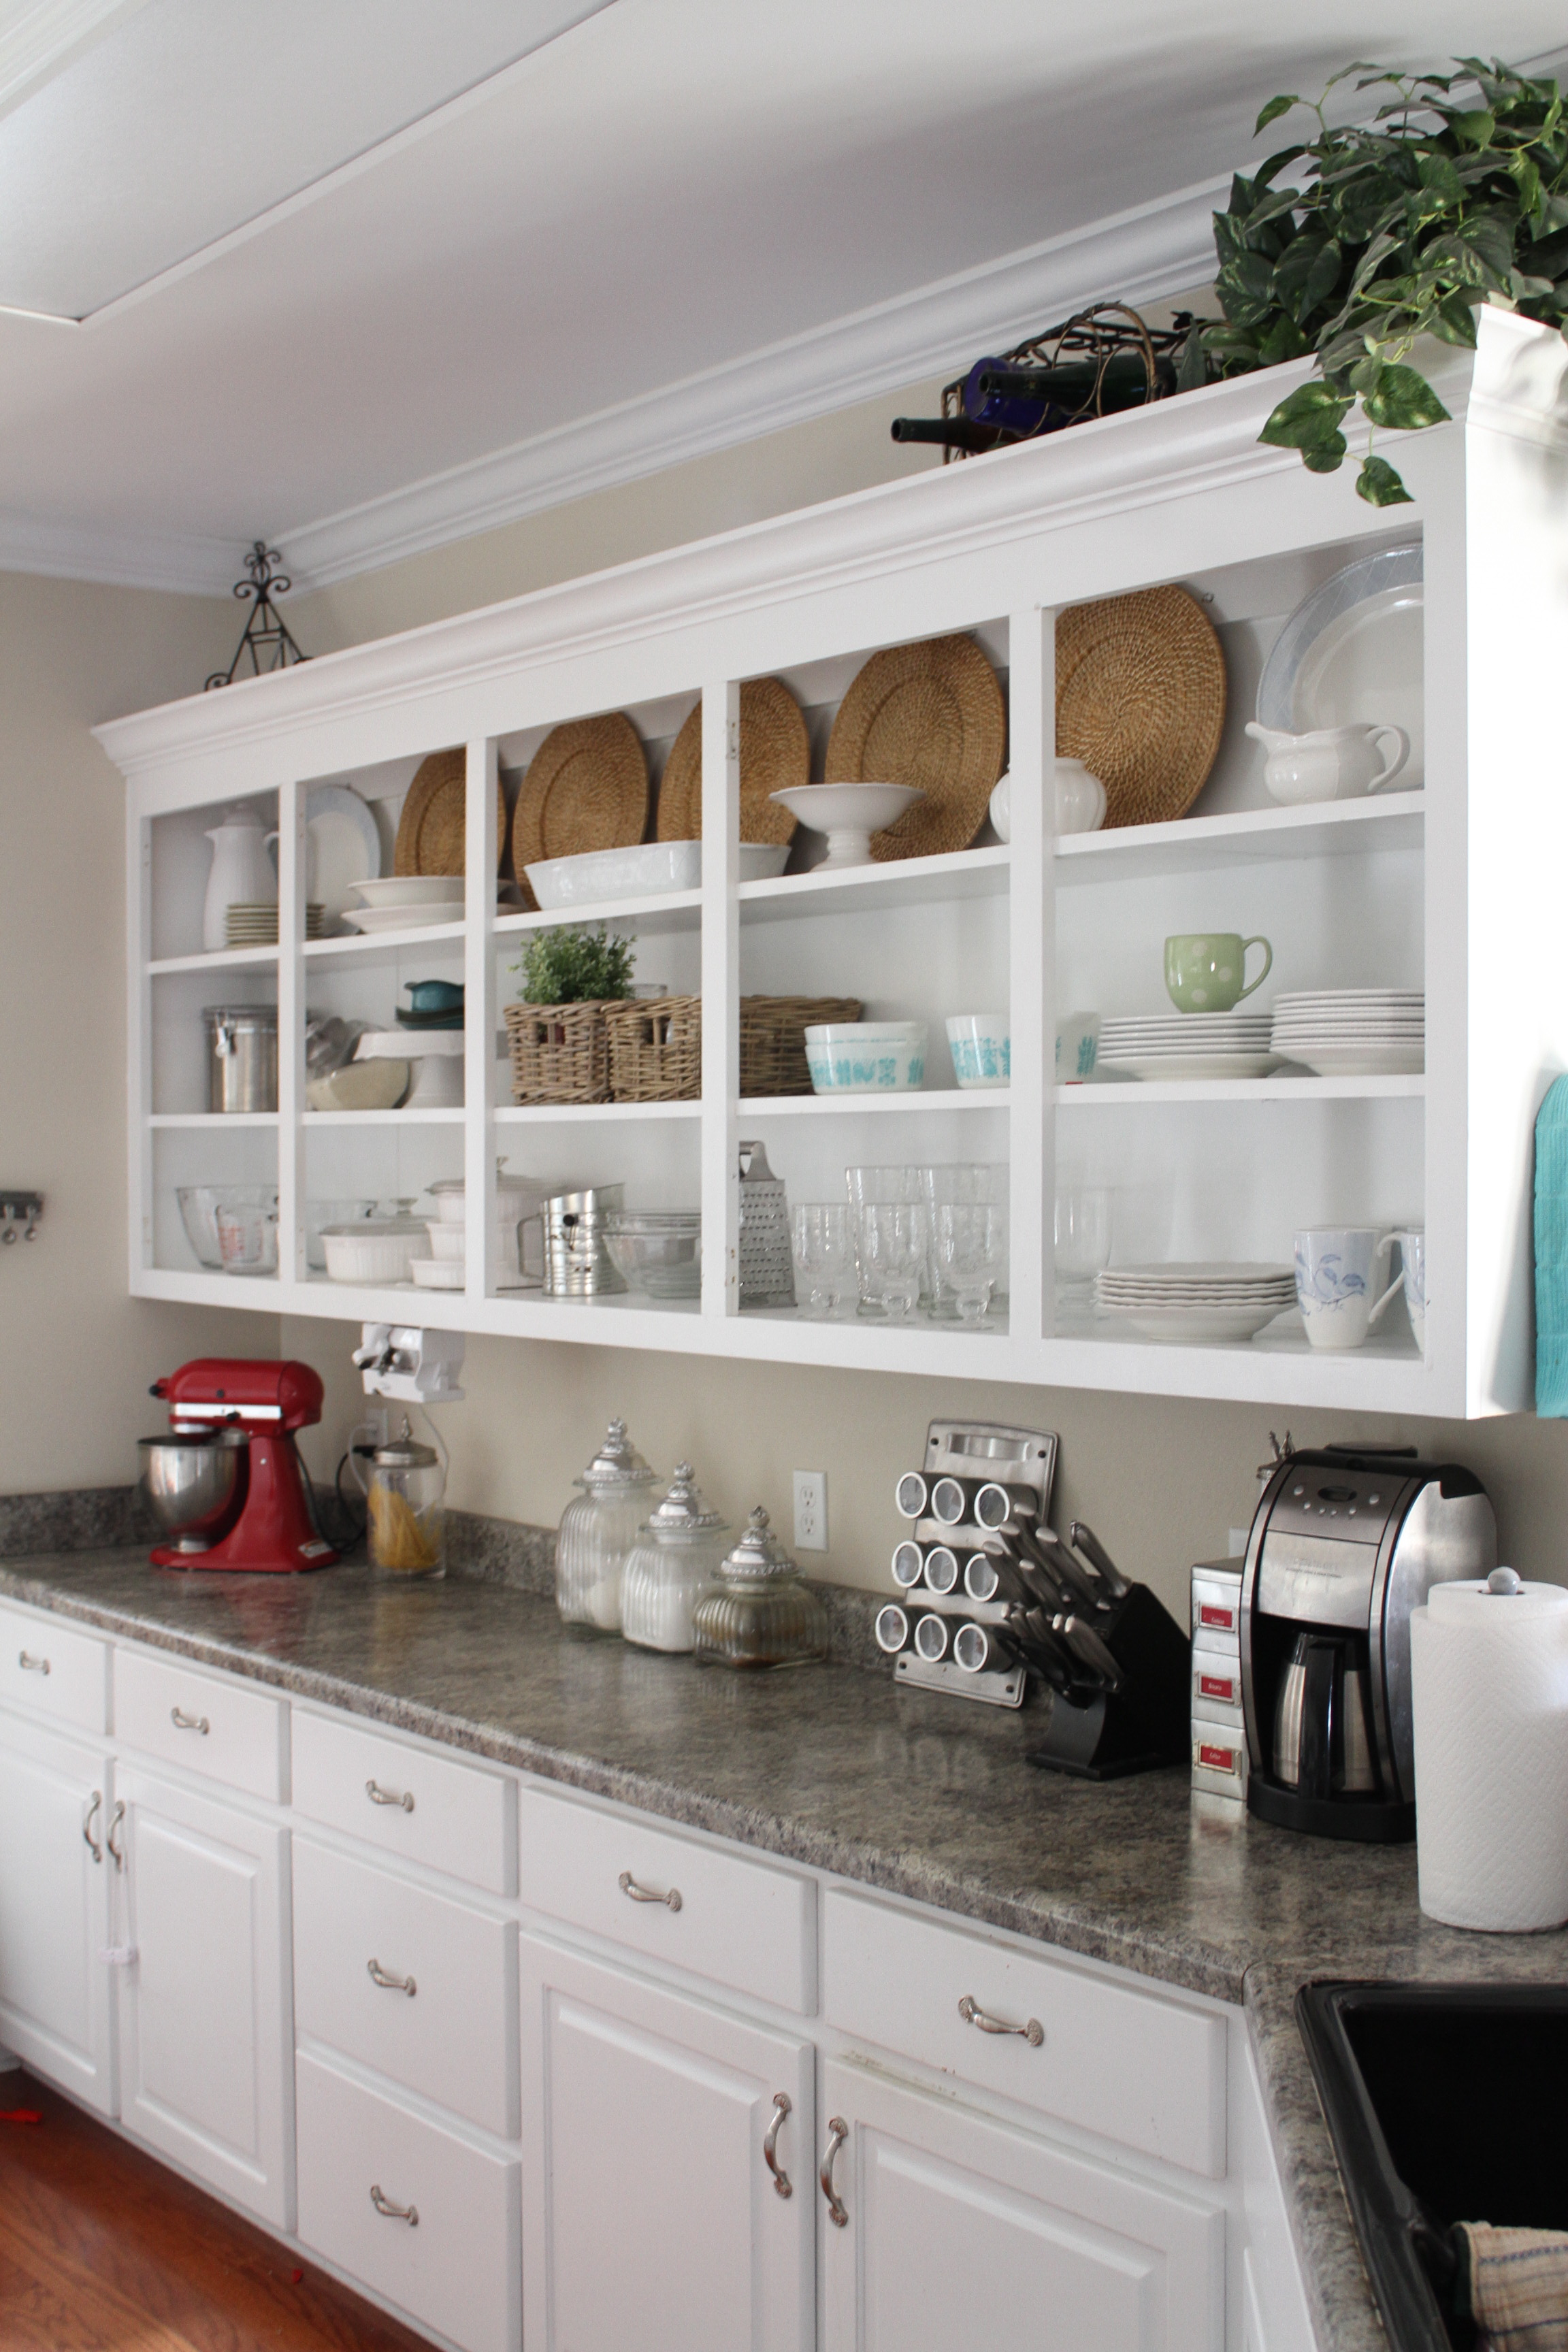 Tips For Open Shelving In The Kitchen: Perfectly Imperfect™ Blog